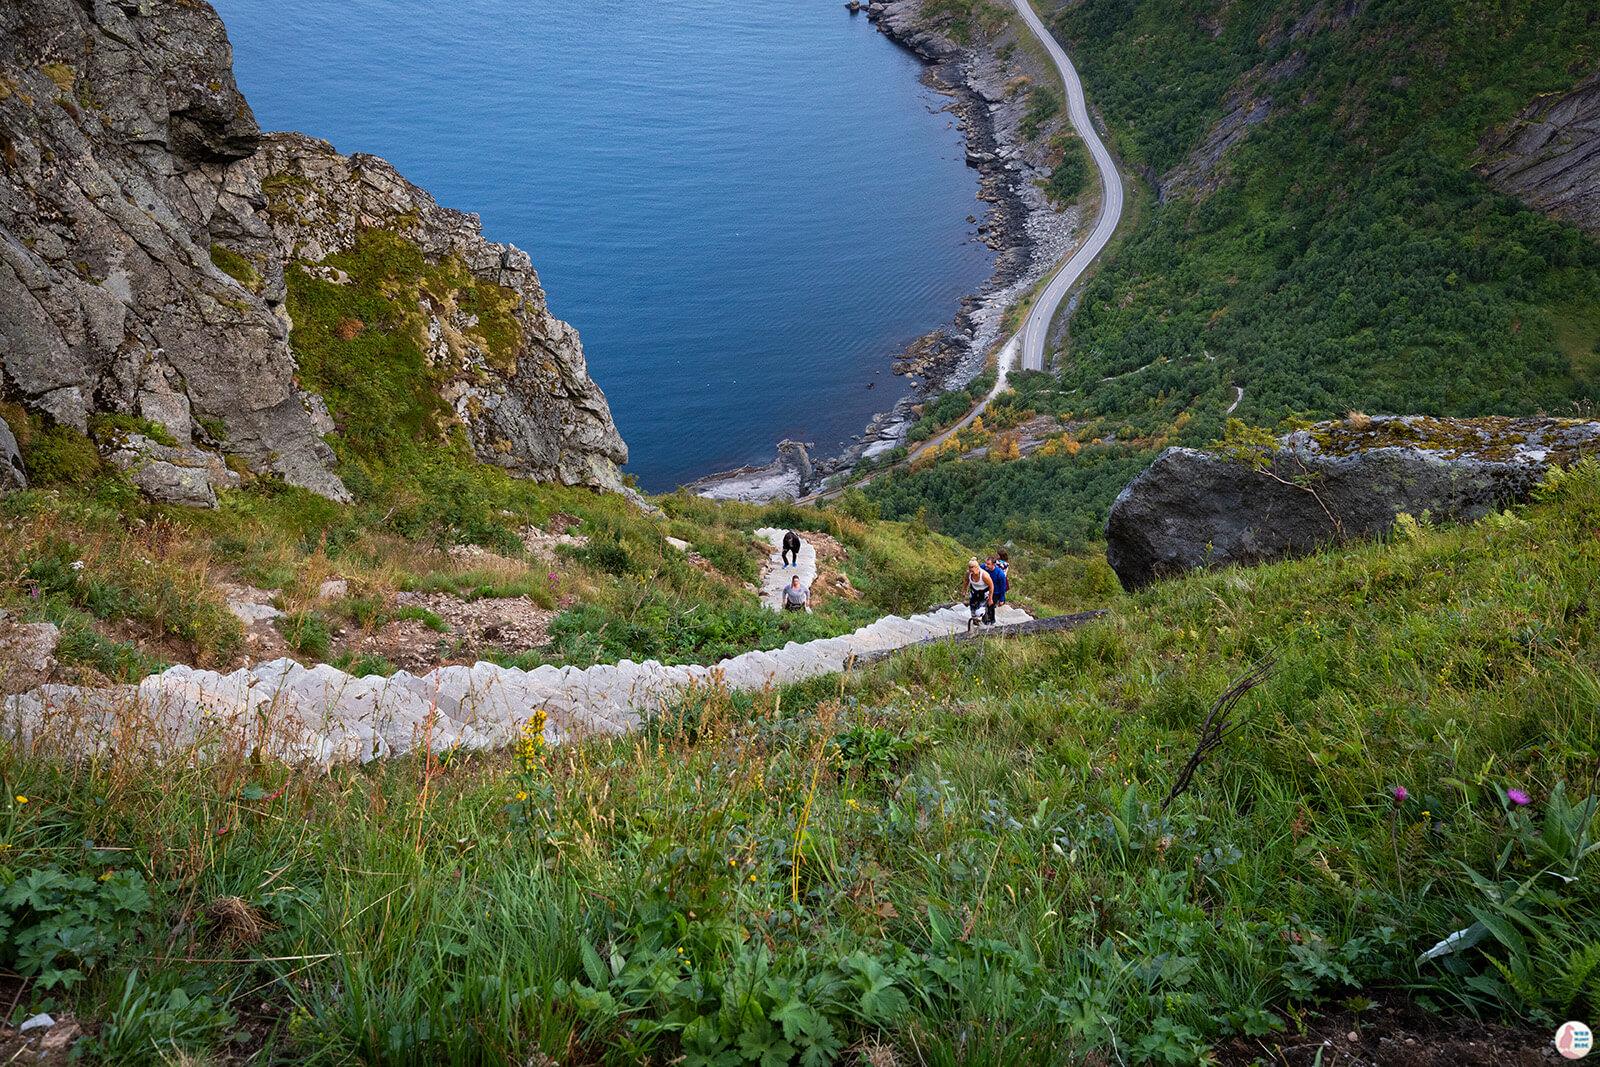 Reinebringen hiking trail, Lofoten, Northern Norway